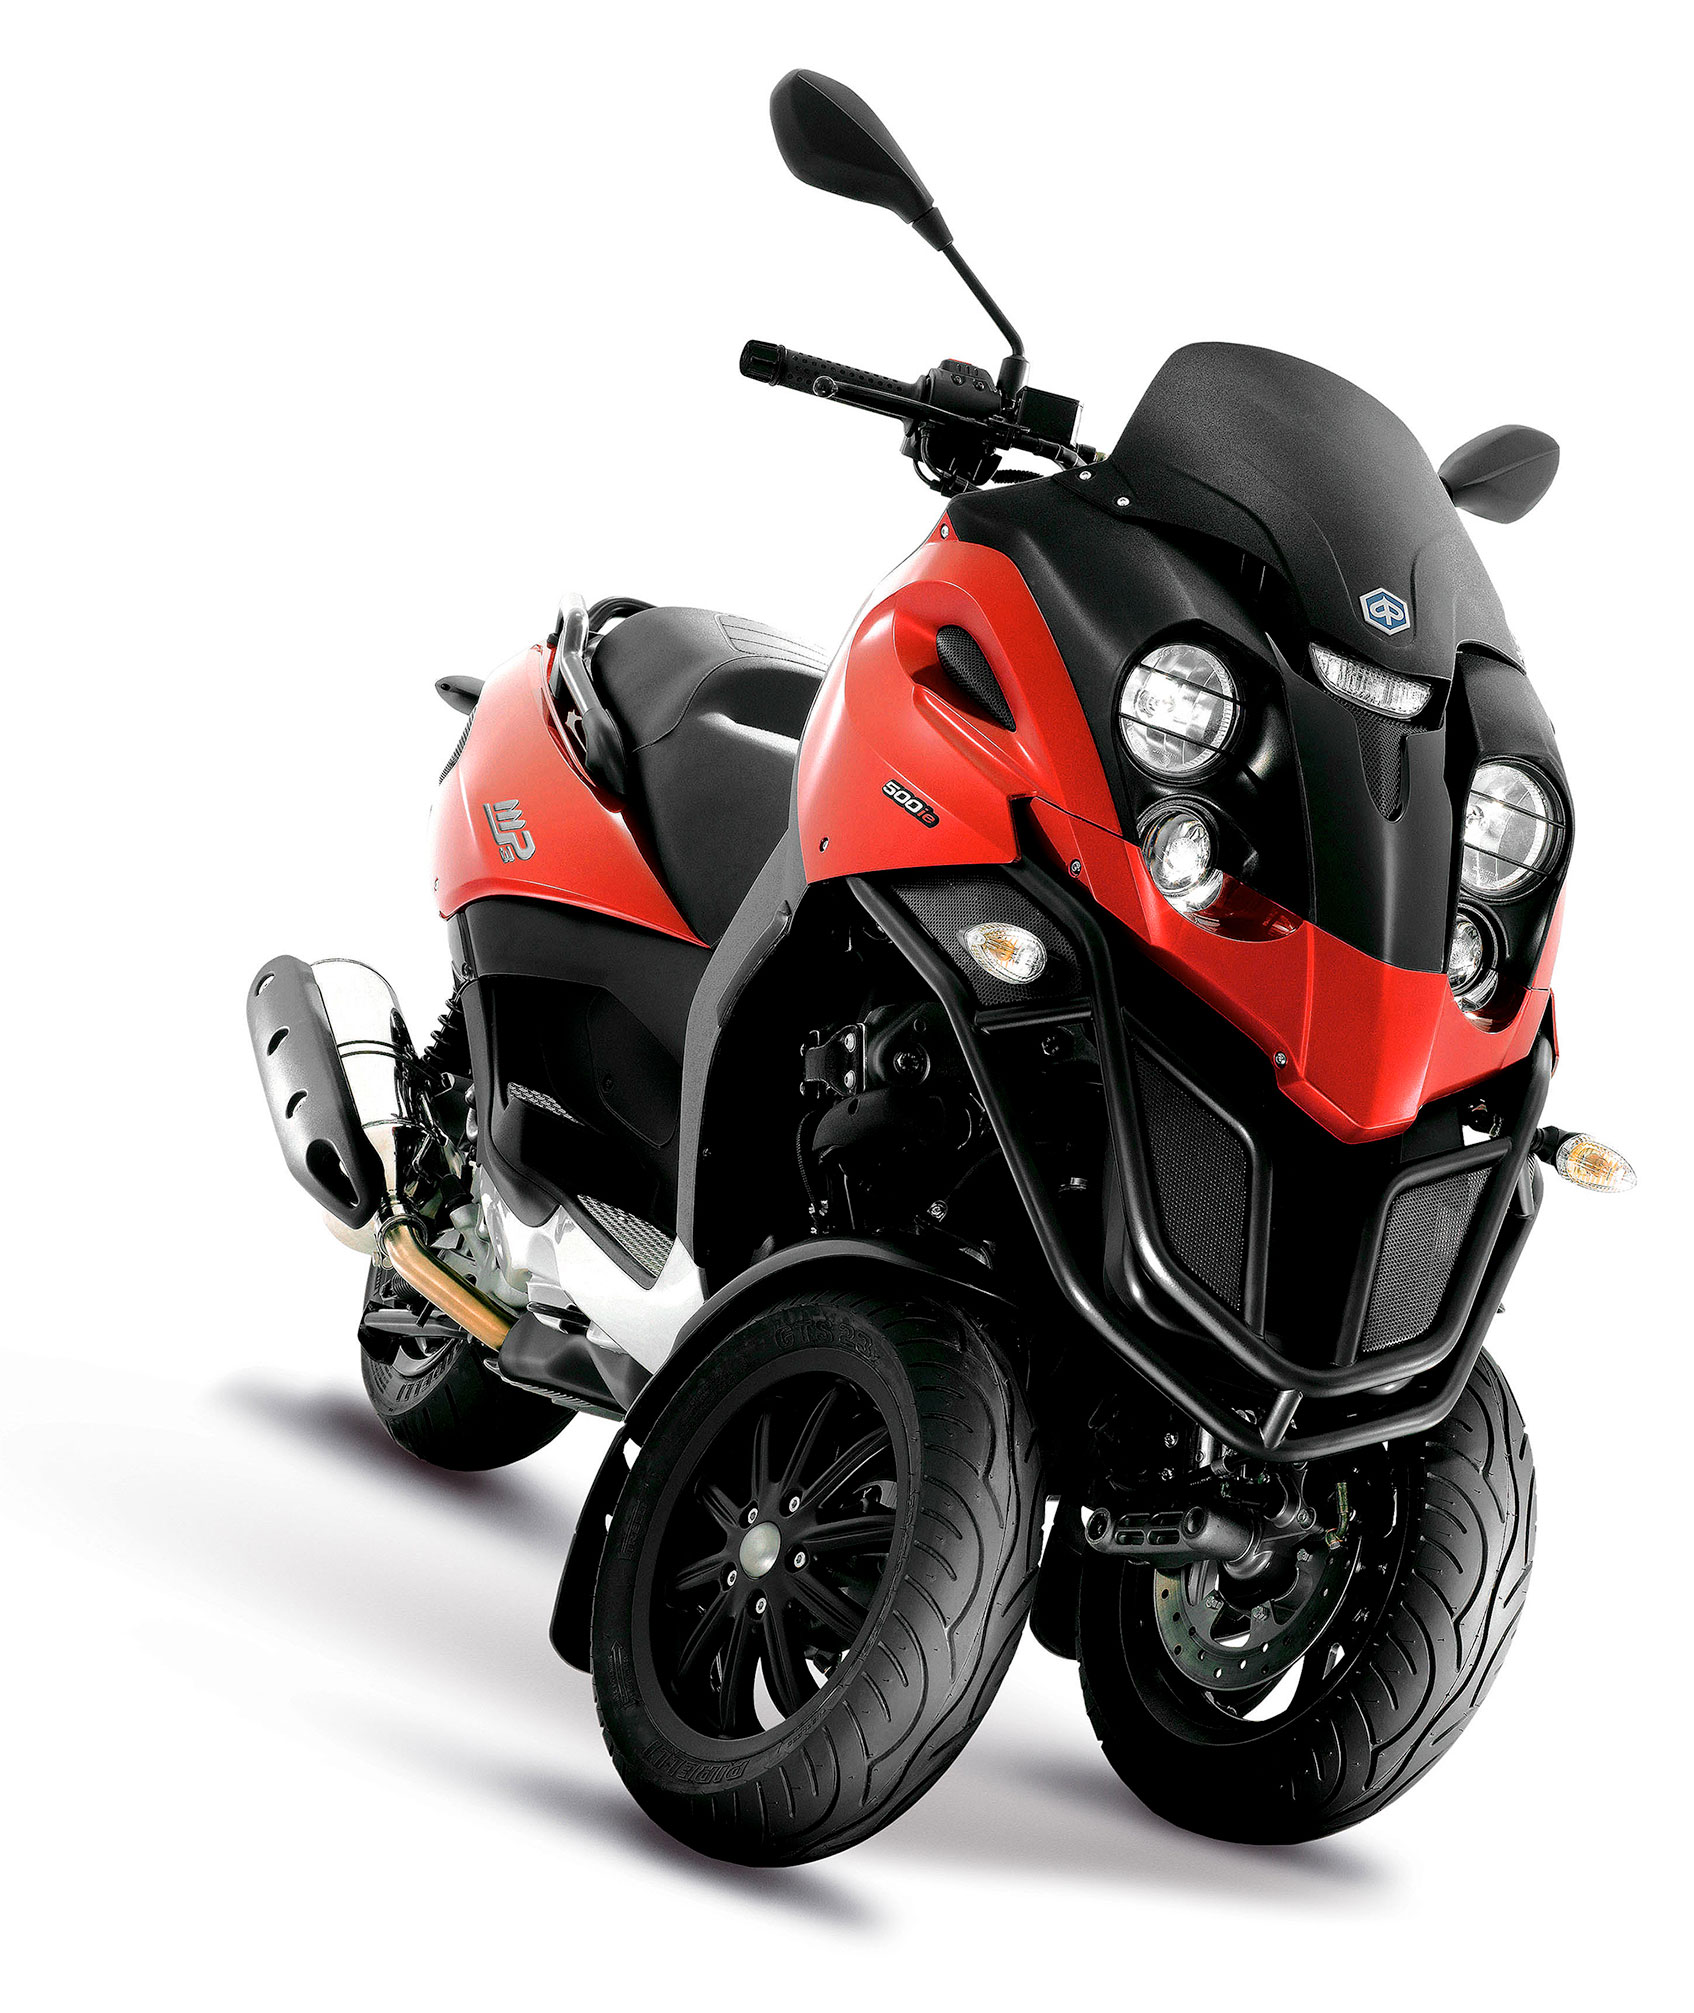 2013 piaggio mp3 500 scooter review